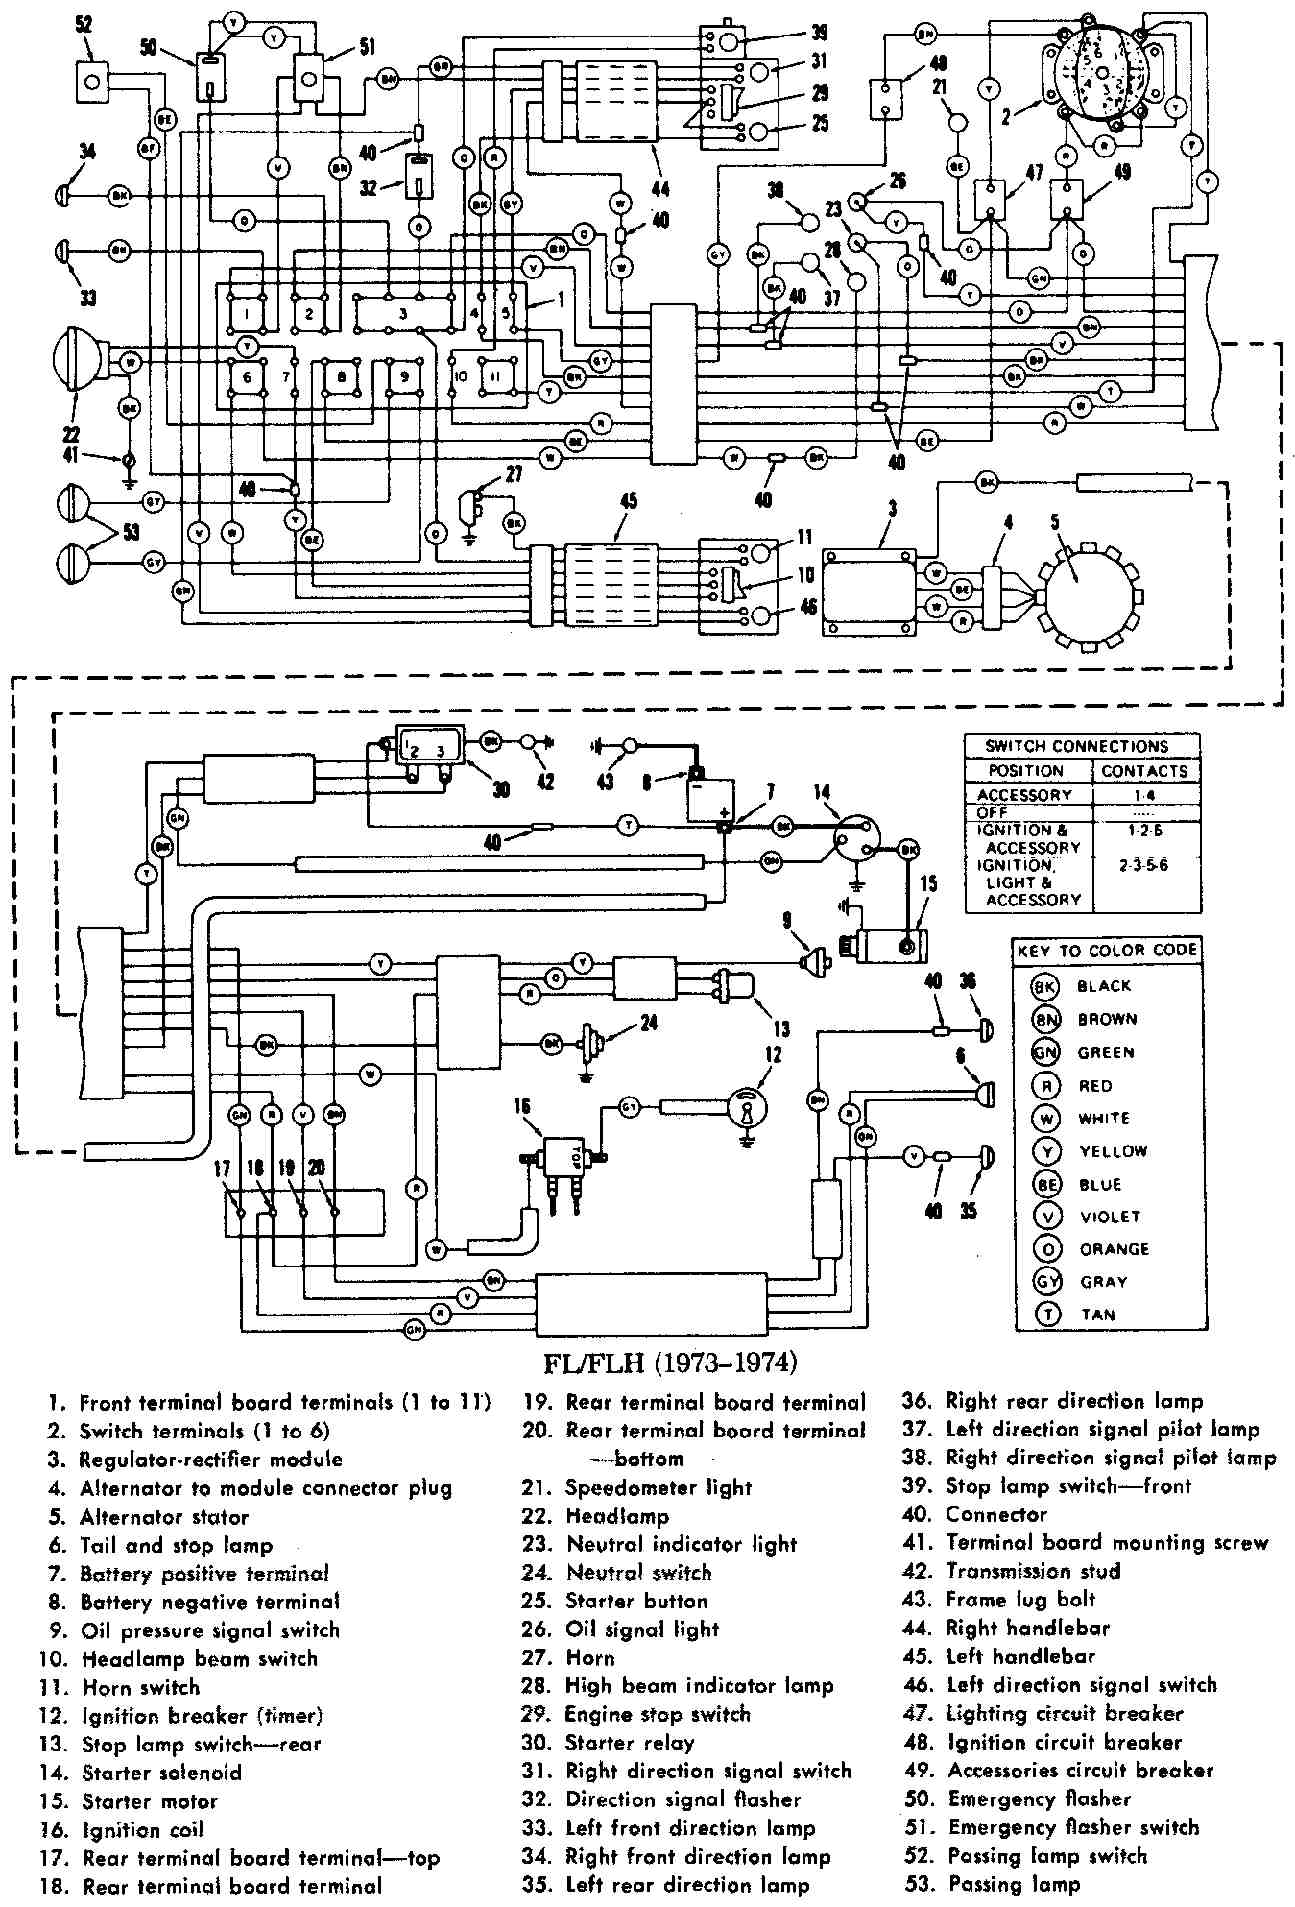 Harley Xlr Wiring Diagram - WIRE Center •